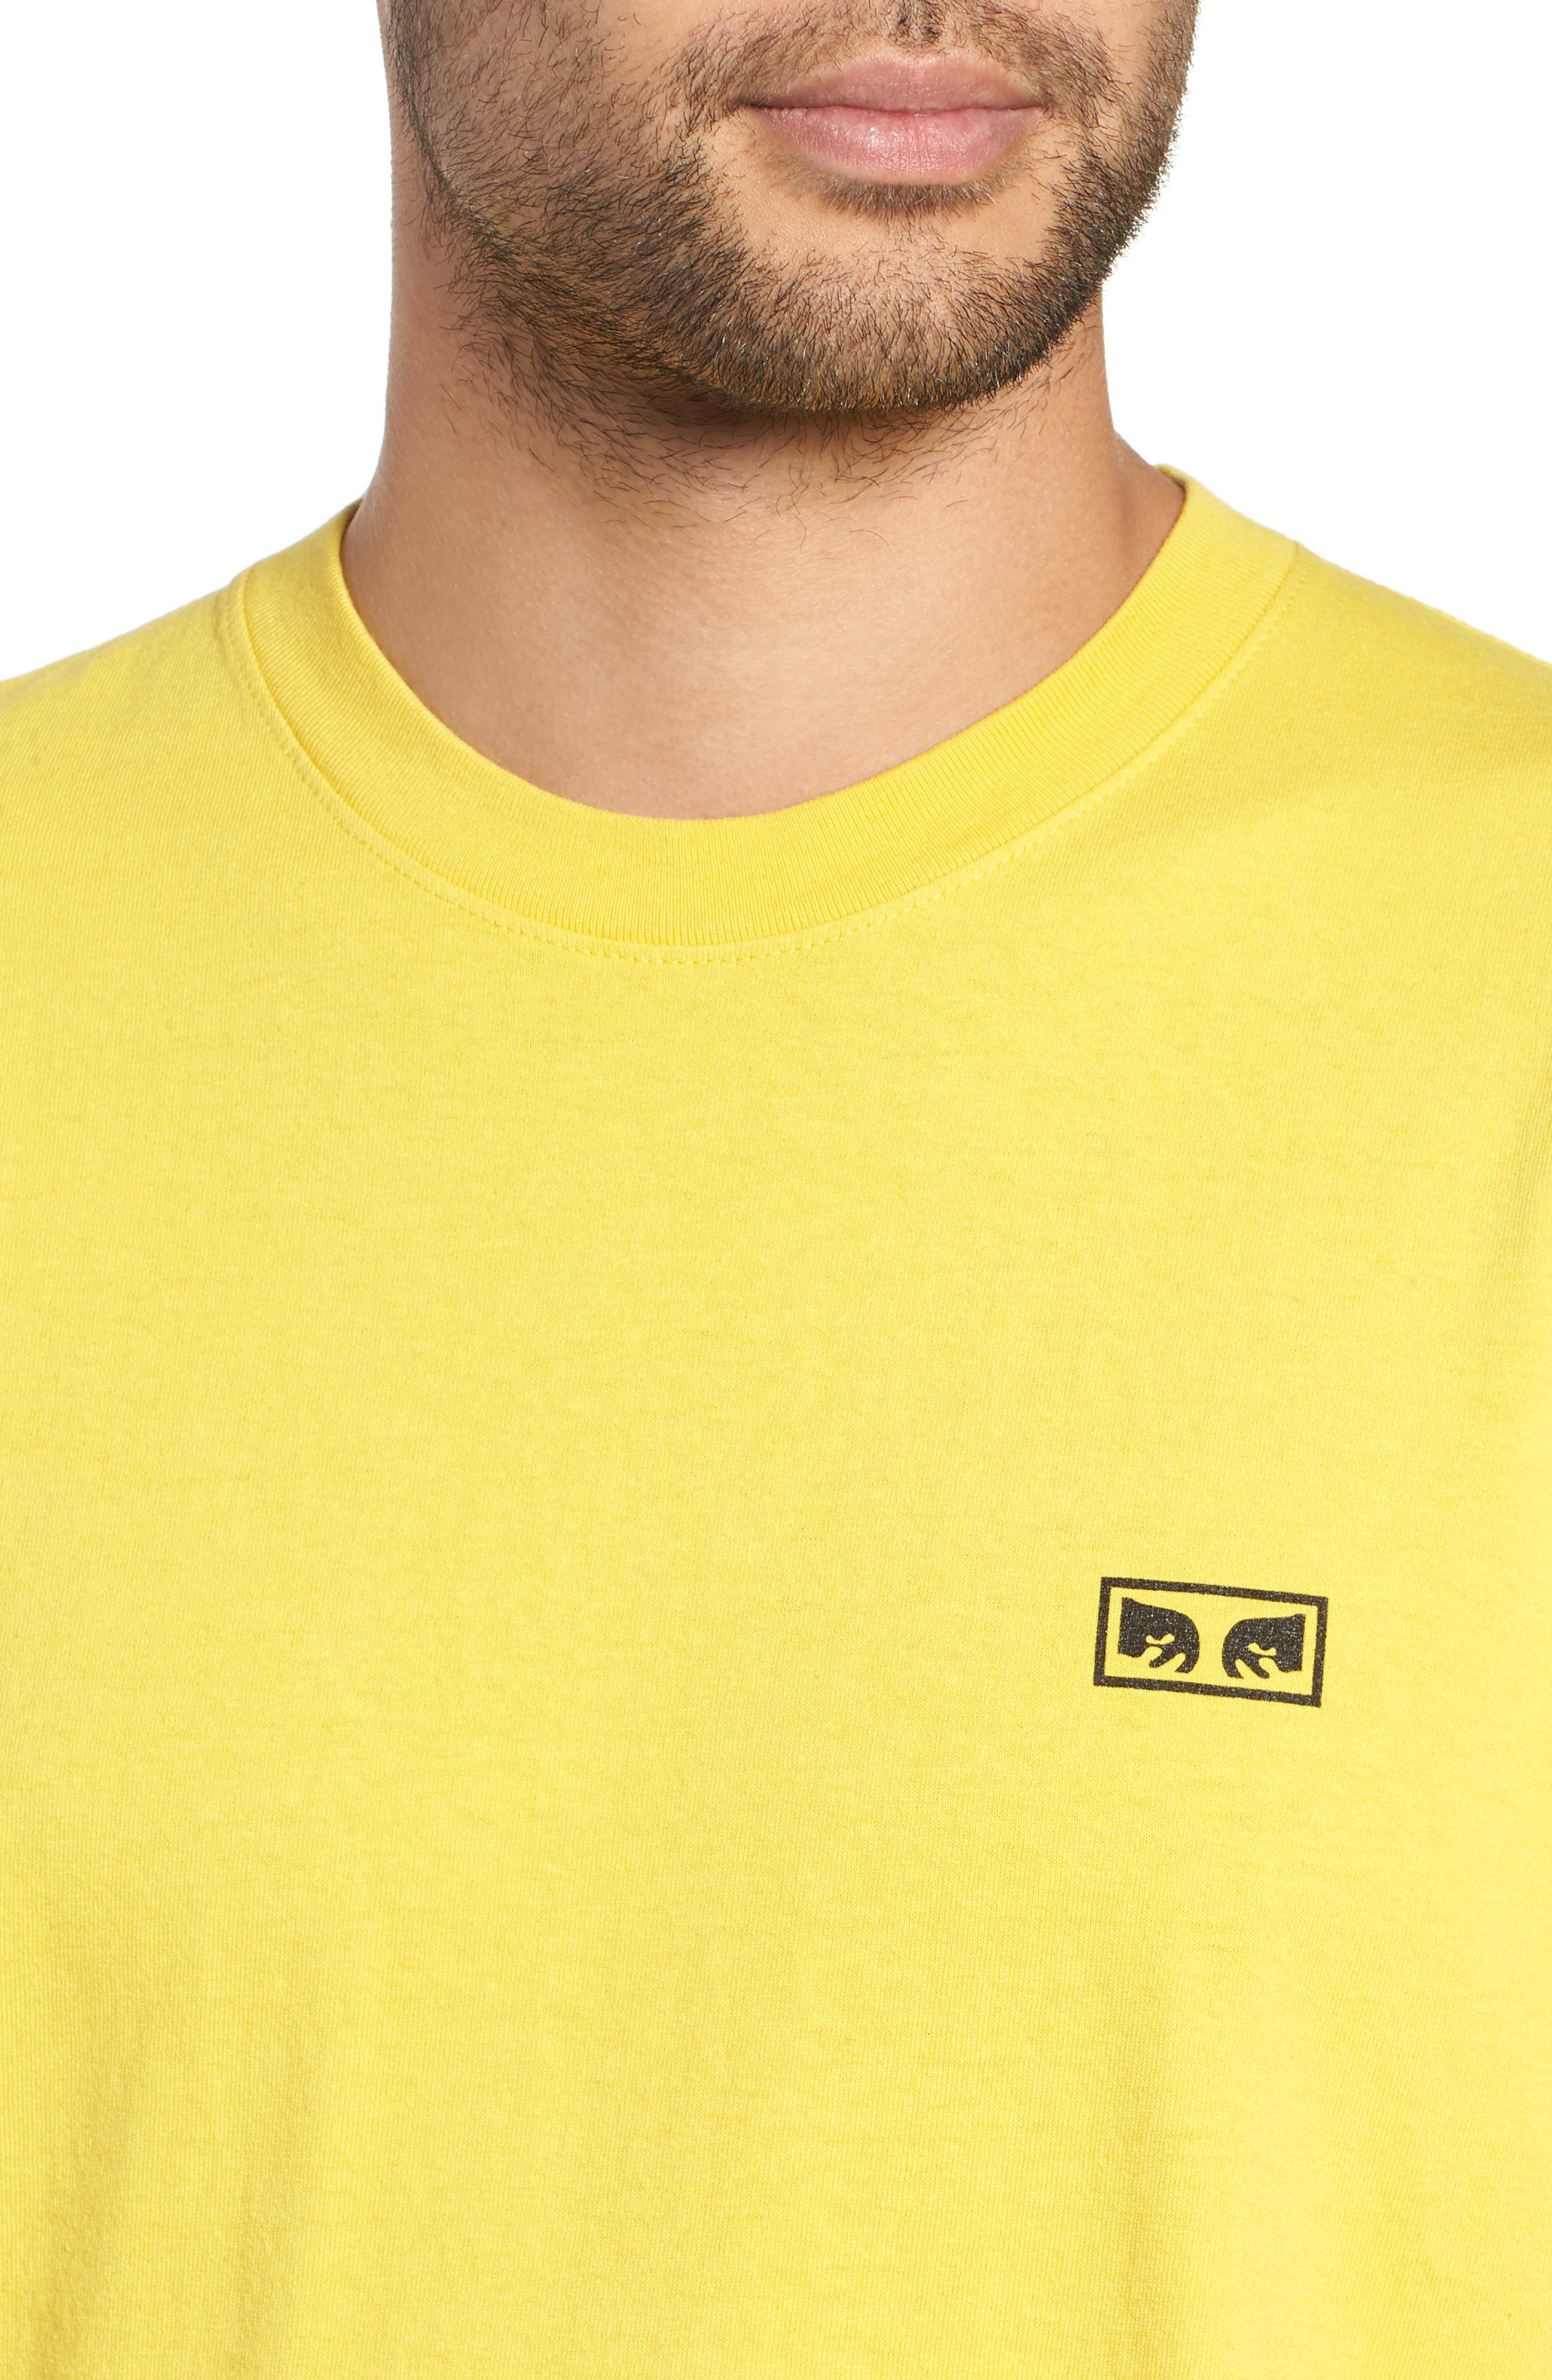 No One Box T-Shirt,                             Alternate thumbnail 4, color,                             SPECTRA YELLOW